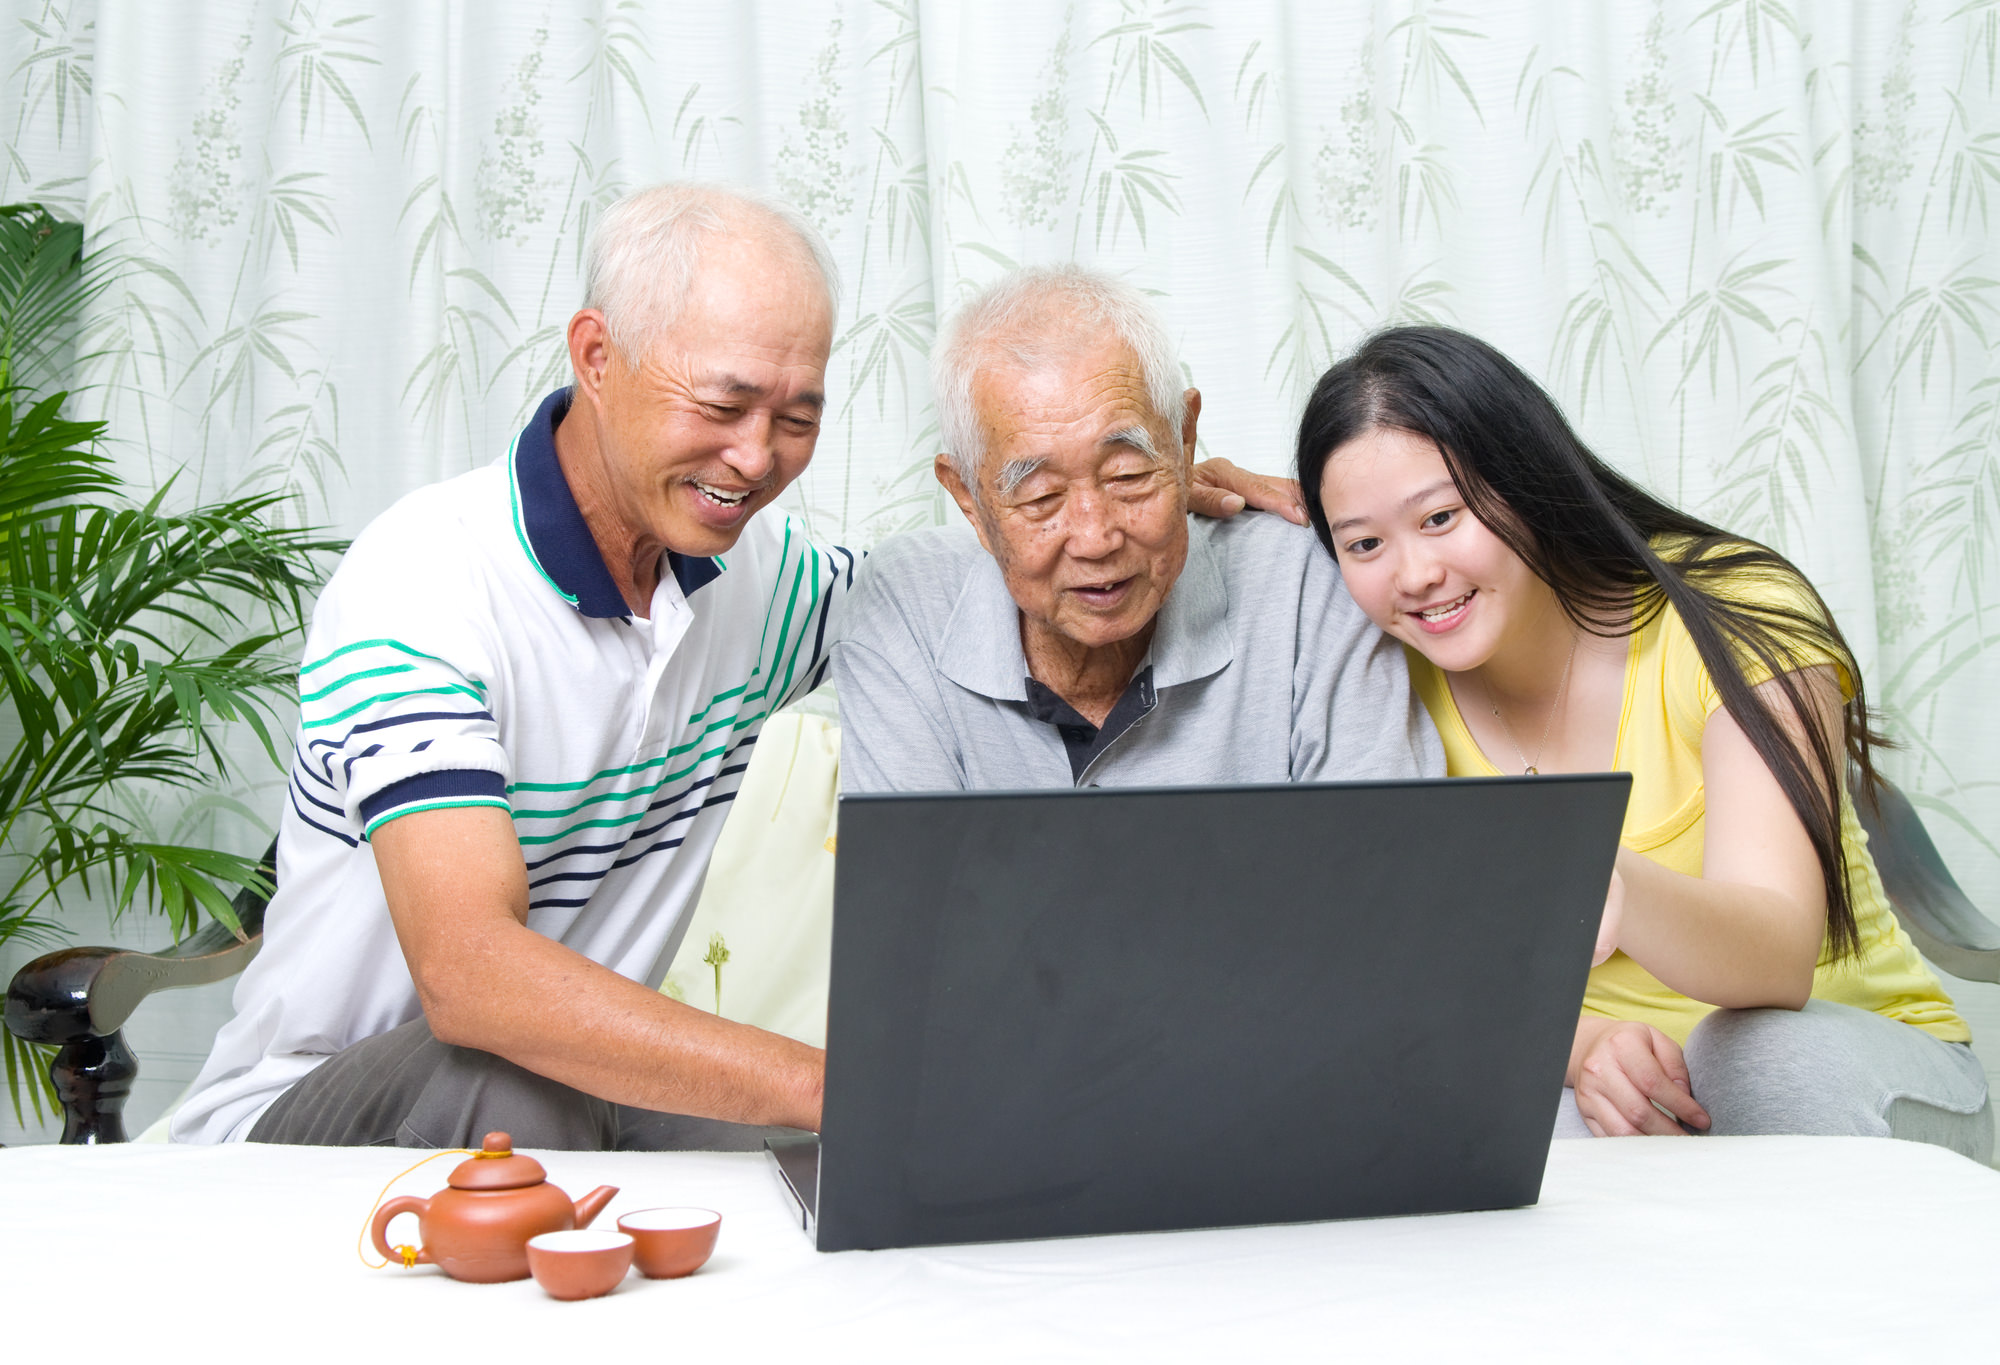 Personalized Home Care in Your Town